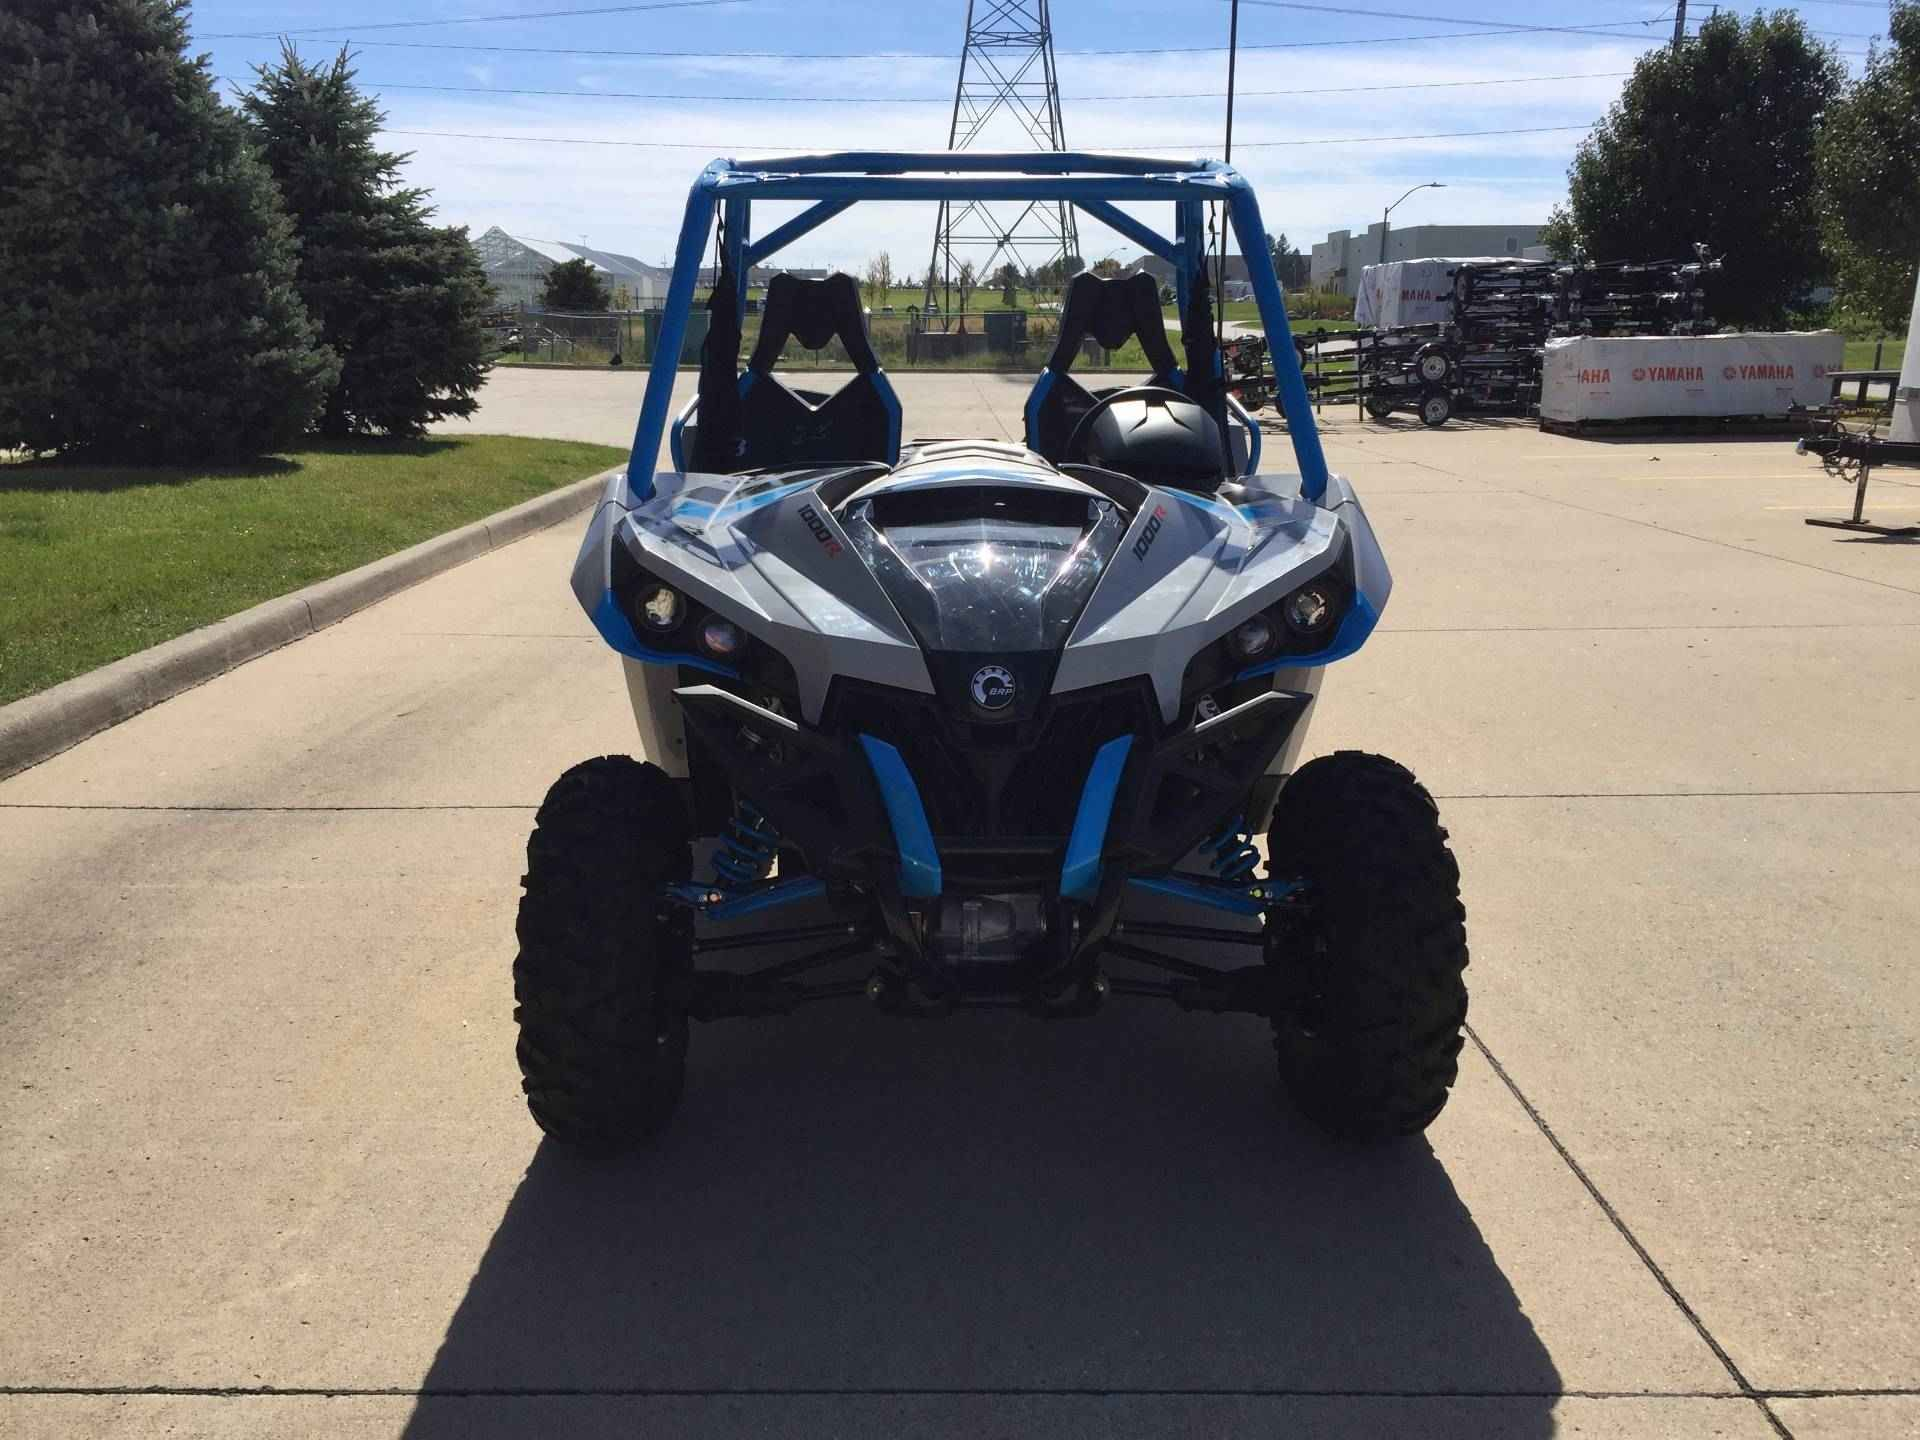 """New 2016 Can-Am Maverickâ""""¢ X® XC ATVs For Sale in Iowa. Call for Pricing This package takes all the ground-breaking innovations of the Can-Am Maverick and optimizes them for pure-sport performance on the trail. At 60 inches, it's narrower than other vehicles in the Maverick lineup. It also includes Tri-Mode Dynamic Power Steering (DPS), Visco-Lok QE auto-locking front differential and beadlock wheels. The trail will often prove to be a difficult test, and the Maverick X xc is built to take…"""